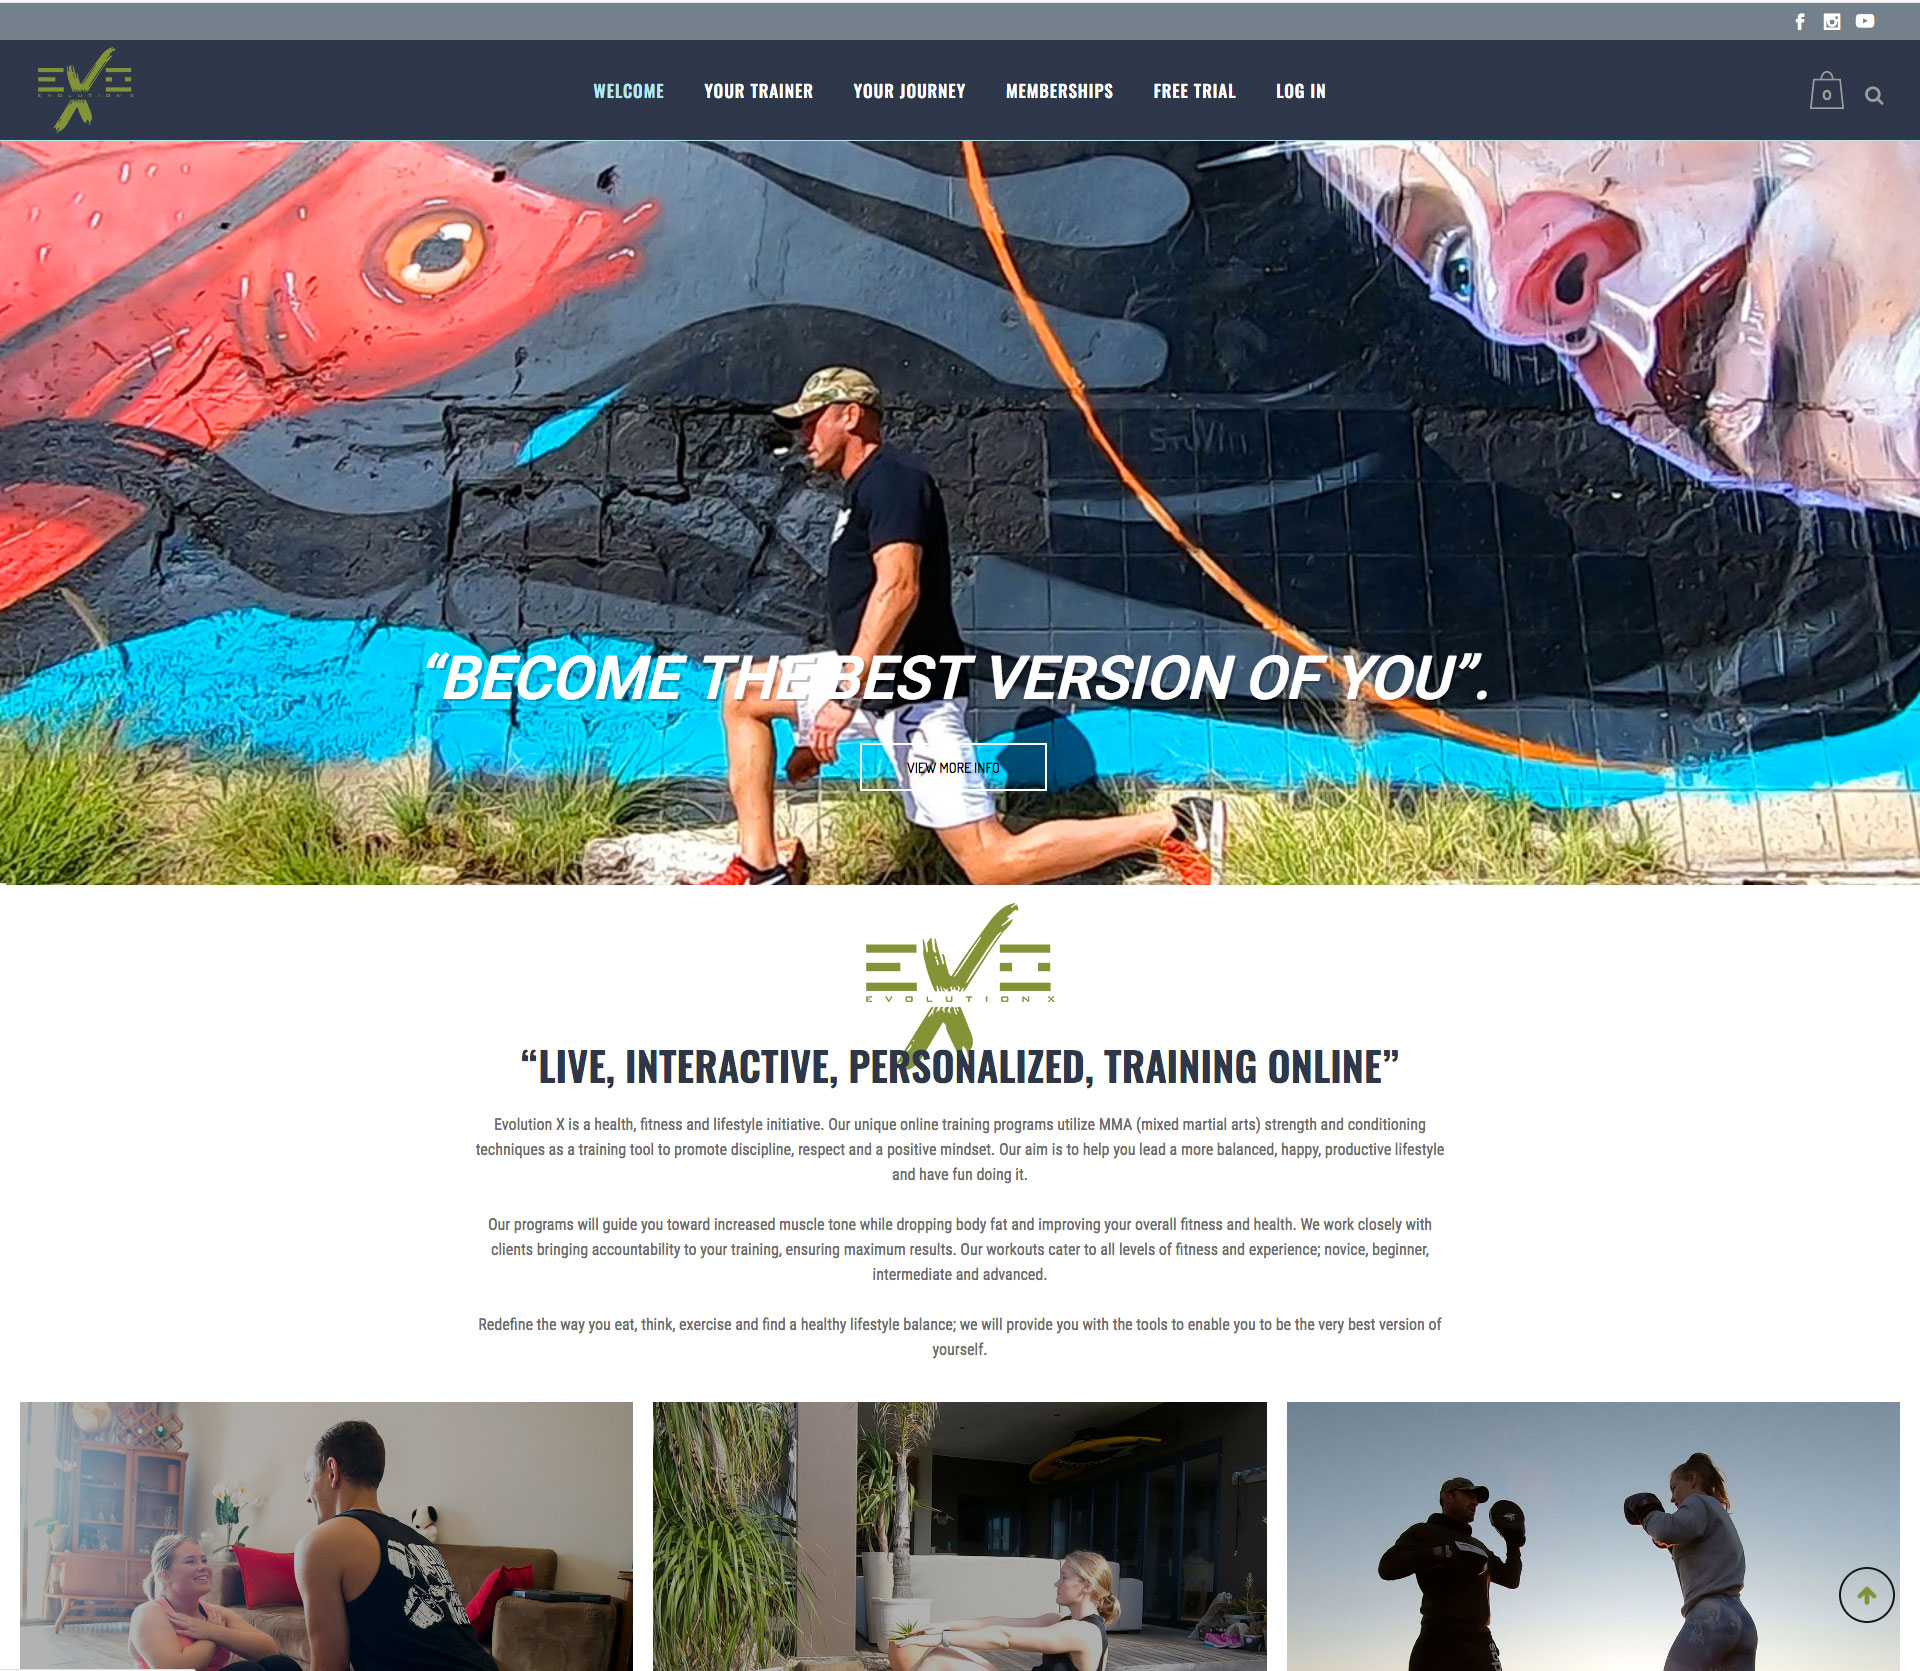 anthony grote website design